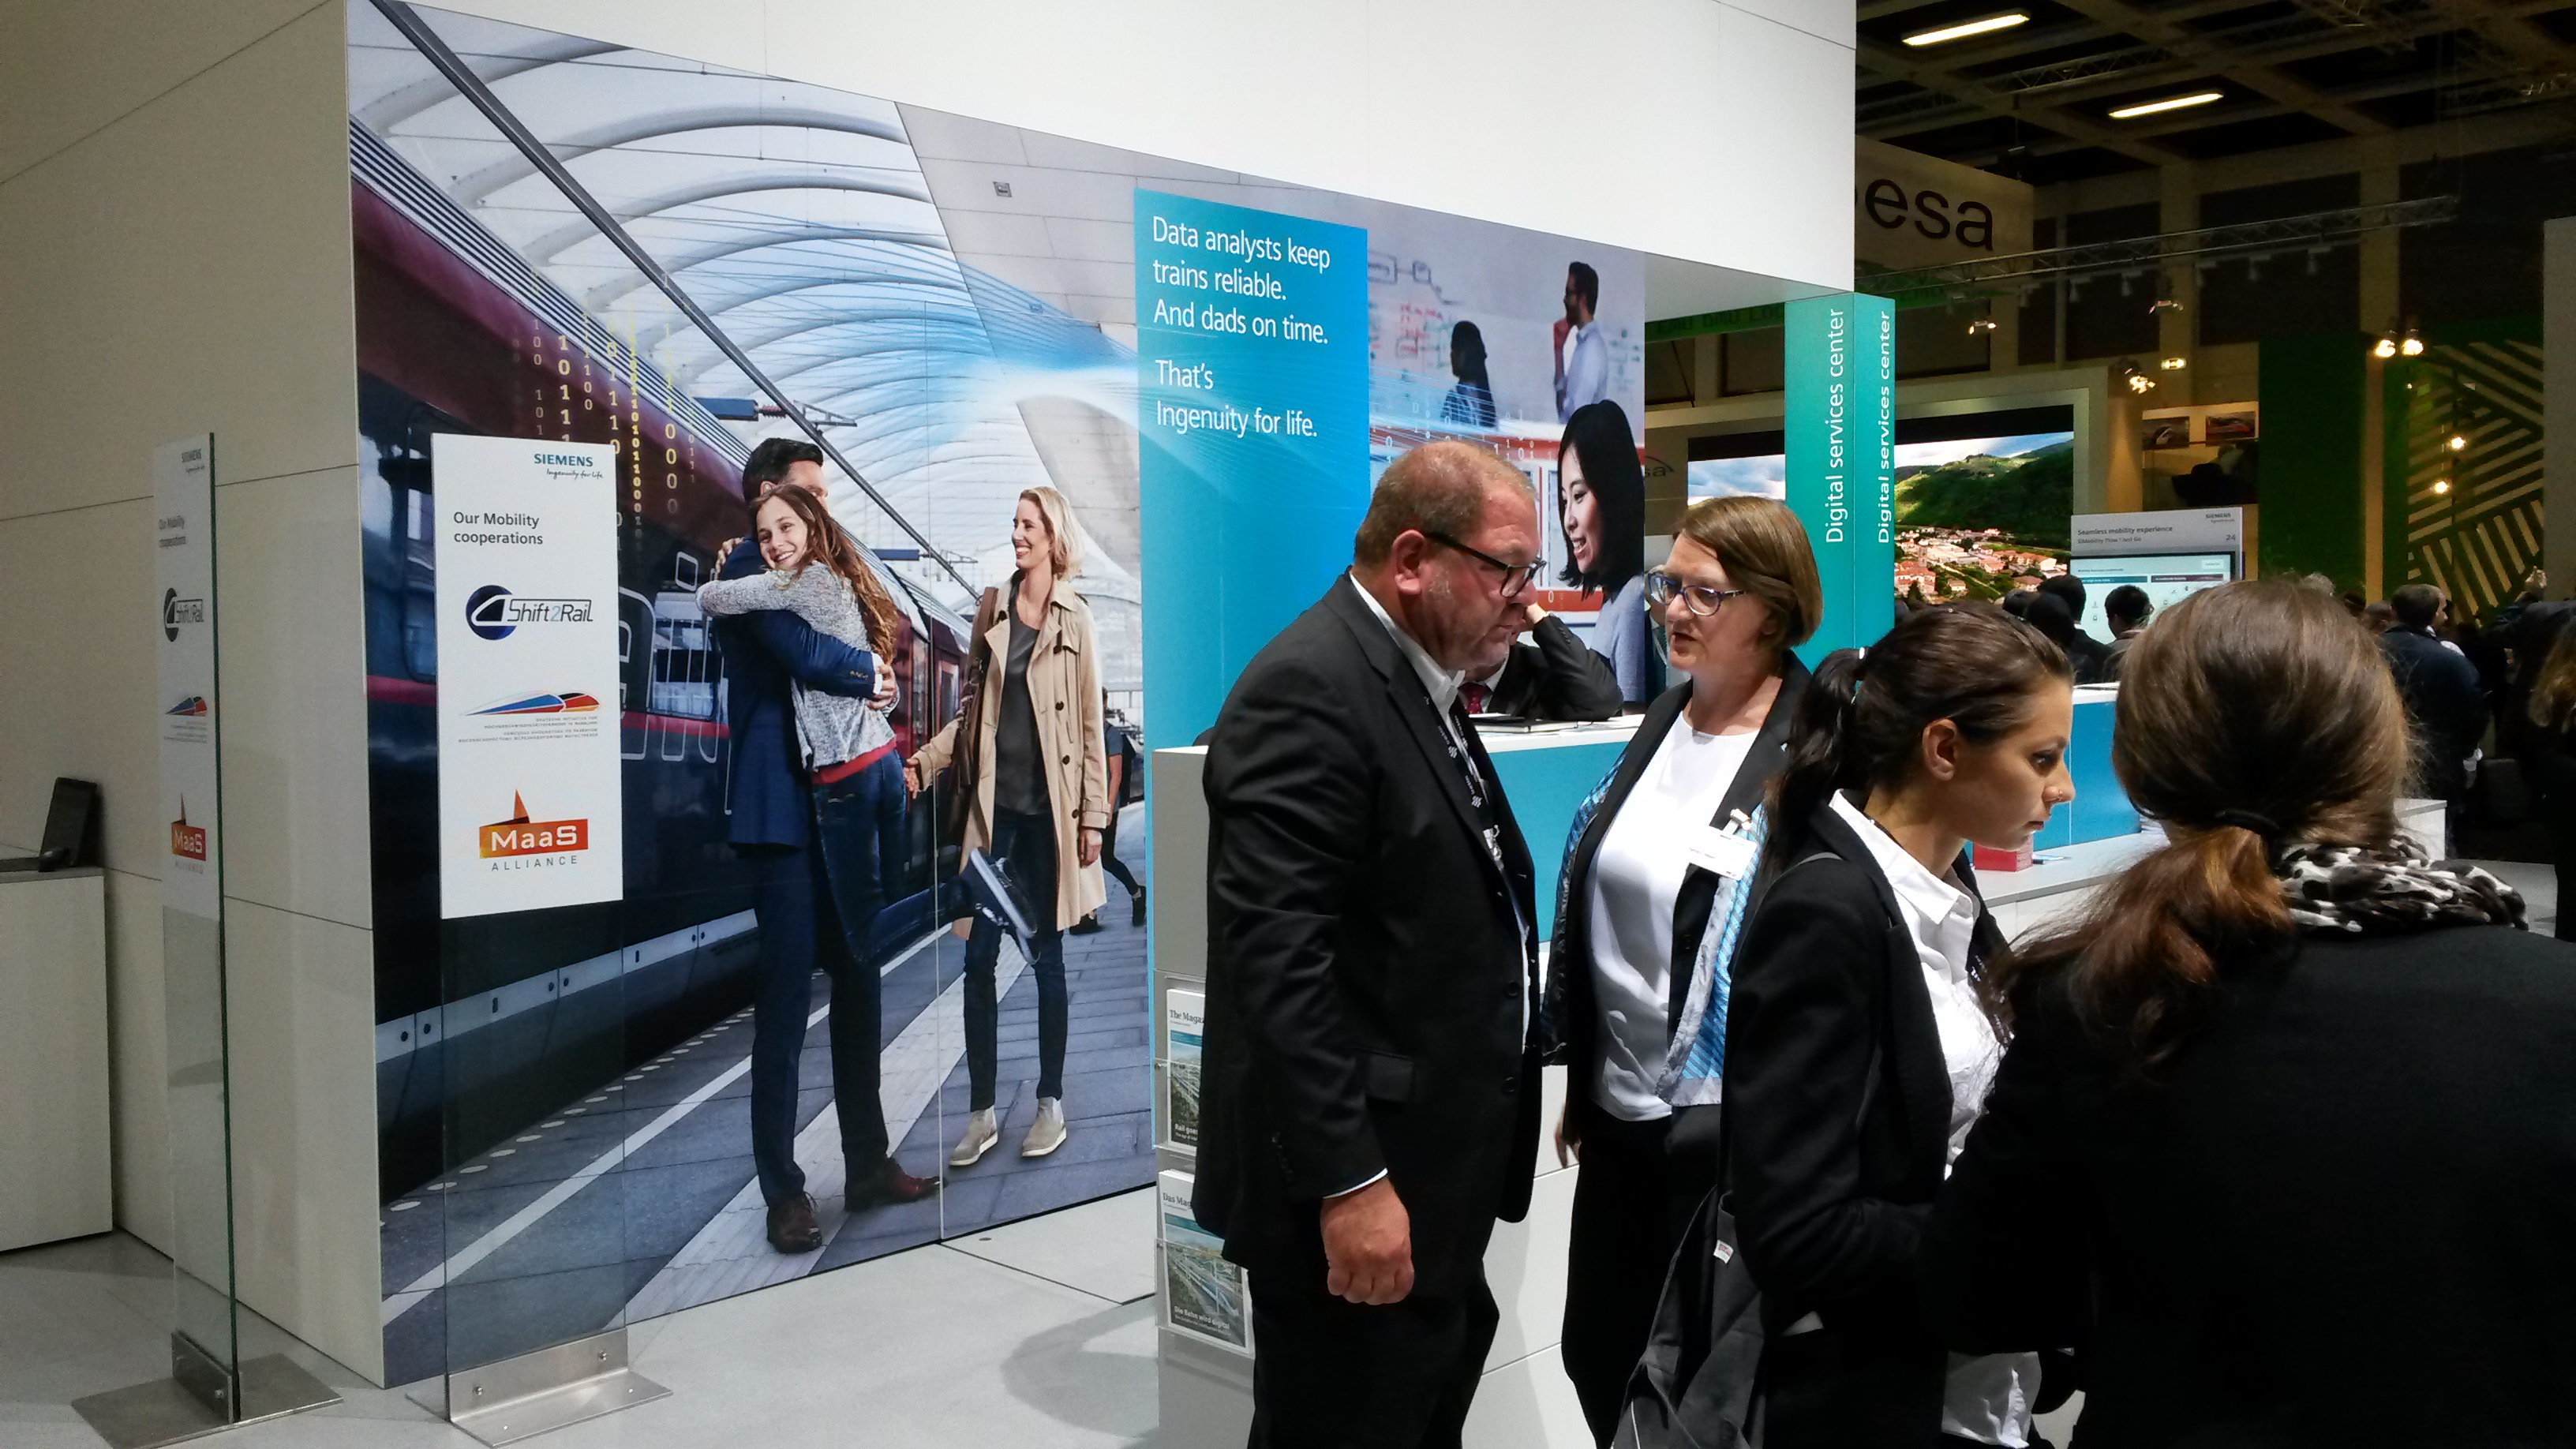 Siemens present their MaaS solutions and MaaS Alliance in Berlin